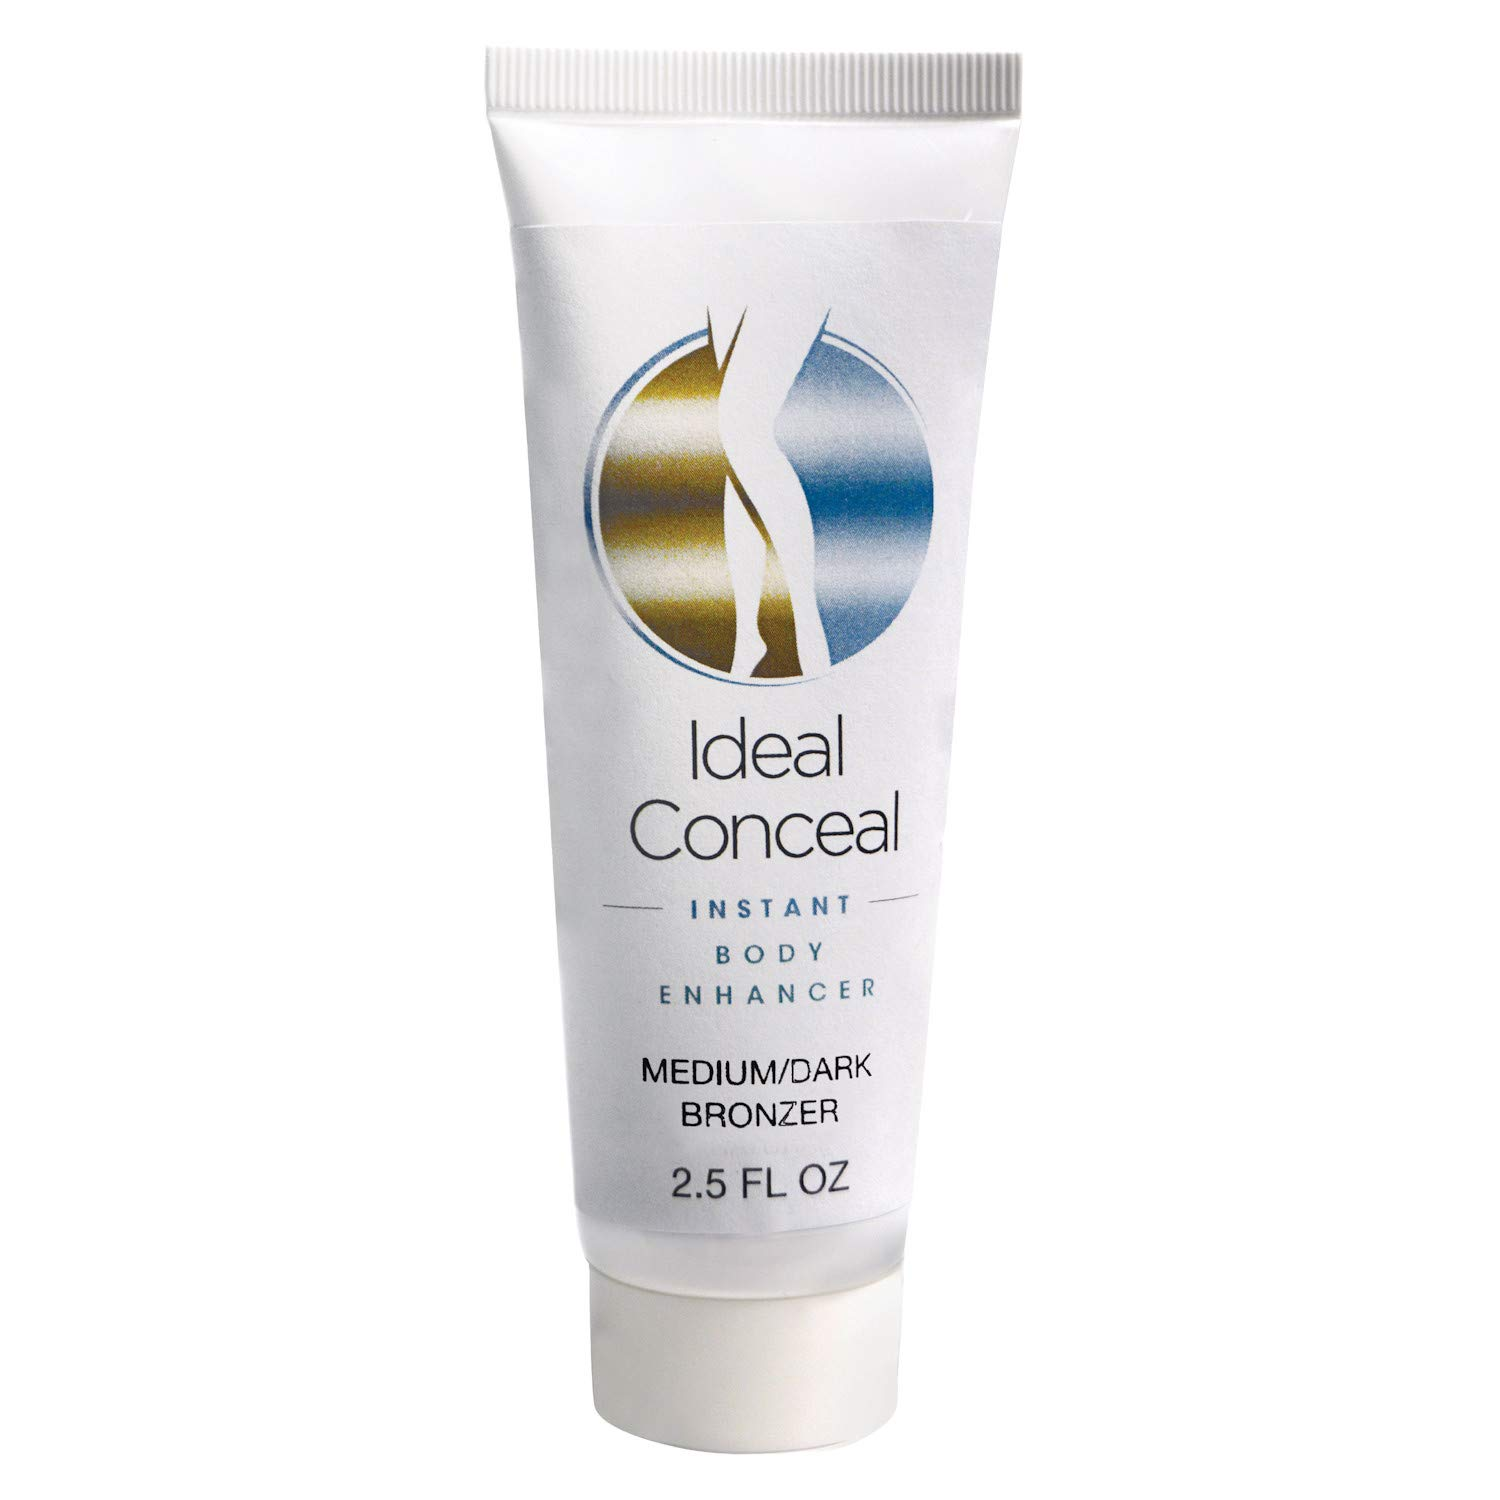 Ideal Conceal Body Enhancer Medium/Dark Bronzer Concealer for Skin Imperfections